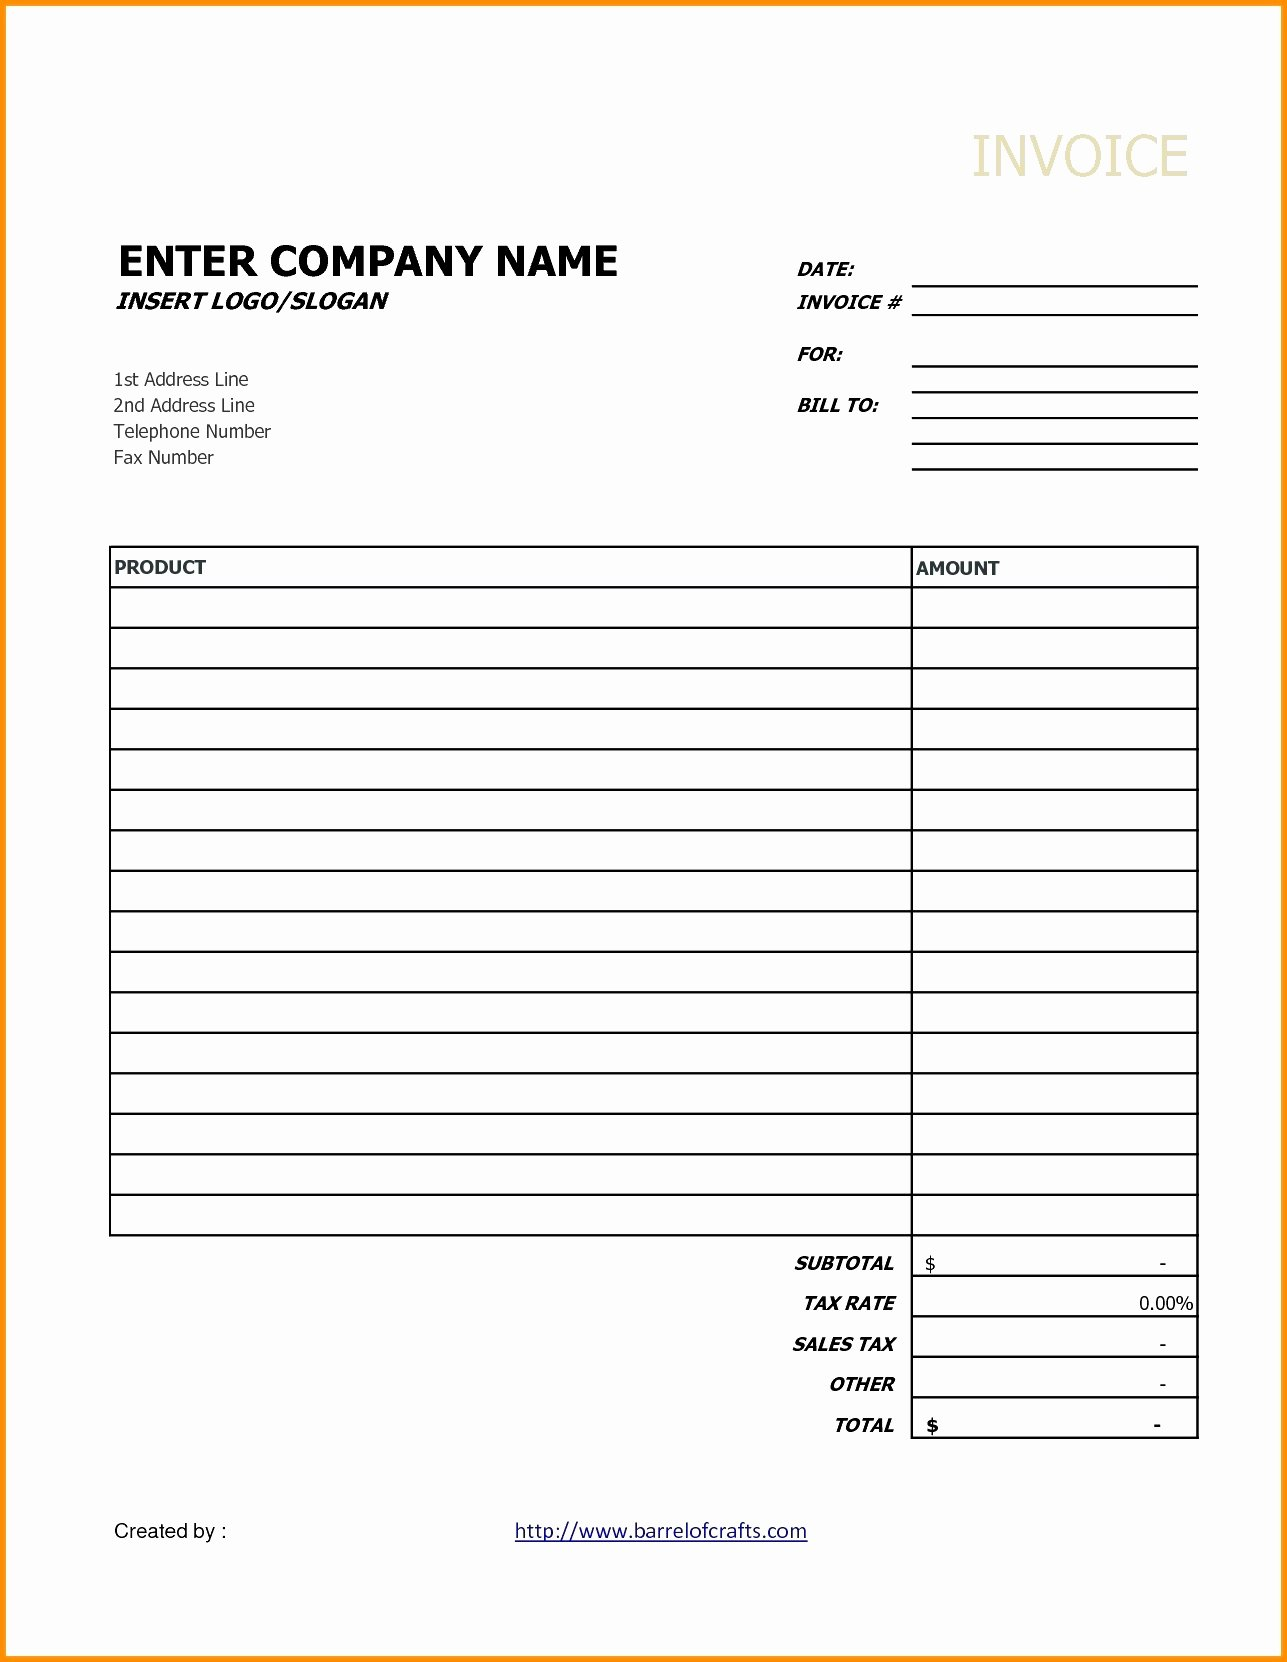 Rent Collection Spreadsheet Template Fresh Rent Collection Spreadsheet Template